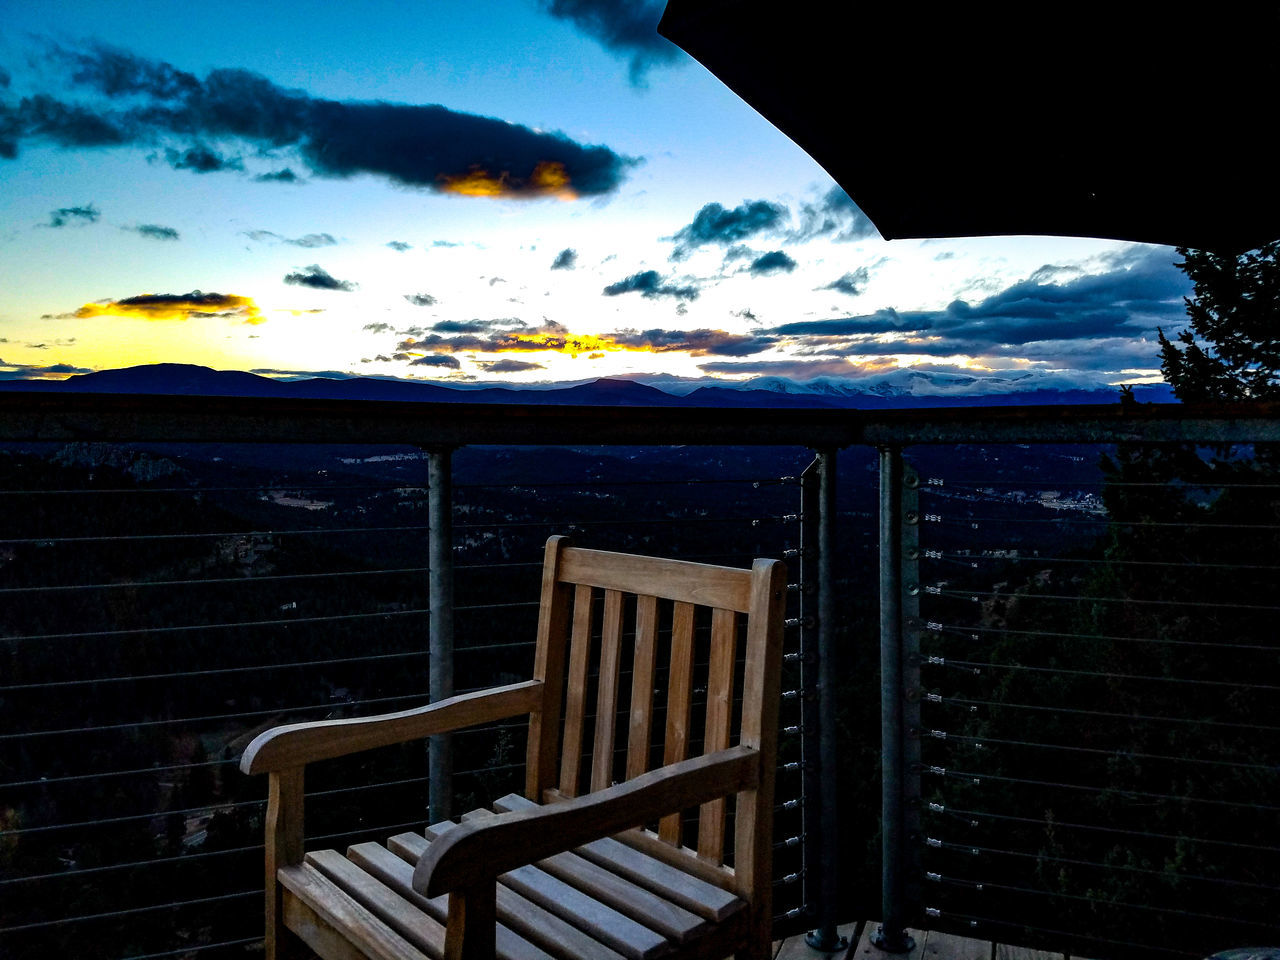 No People Outdoors Sky Nature Shiloutte Landscape Cloud - Sky Mountains Pine Trees Trees Mountains And Sky Sunset Deck View Deck Chair Unbrella Railing Mountain Range Mountain View Pine Woodland Colorado Fall November Evergreen Scenics EyeEmNewHere